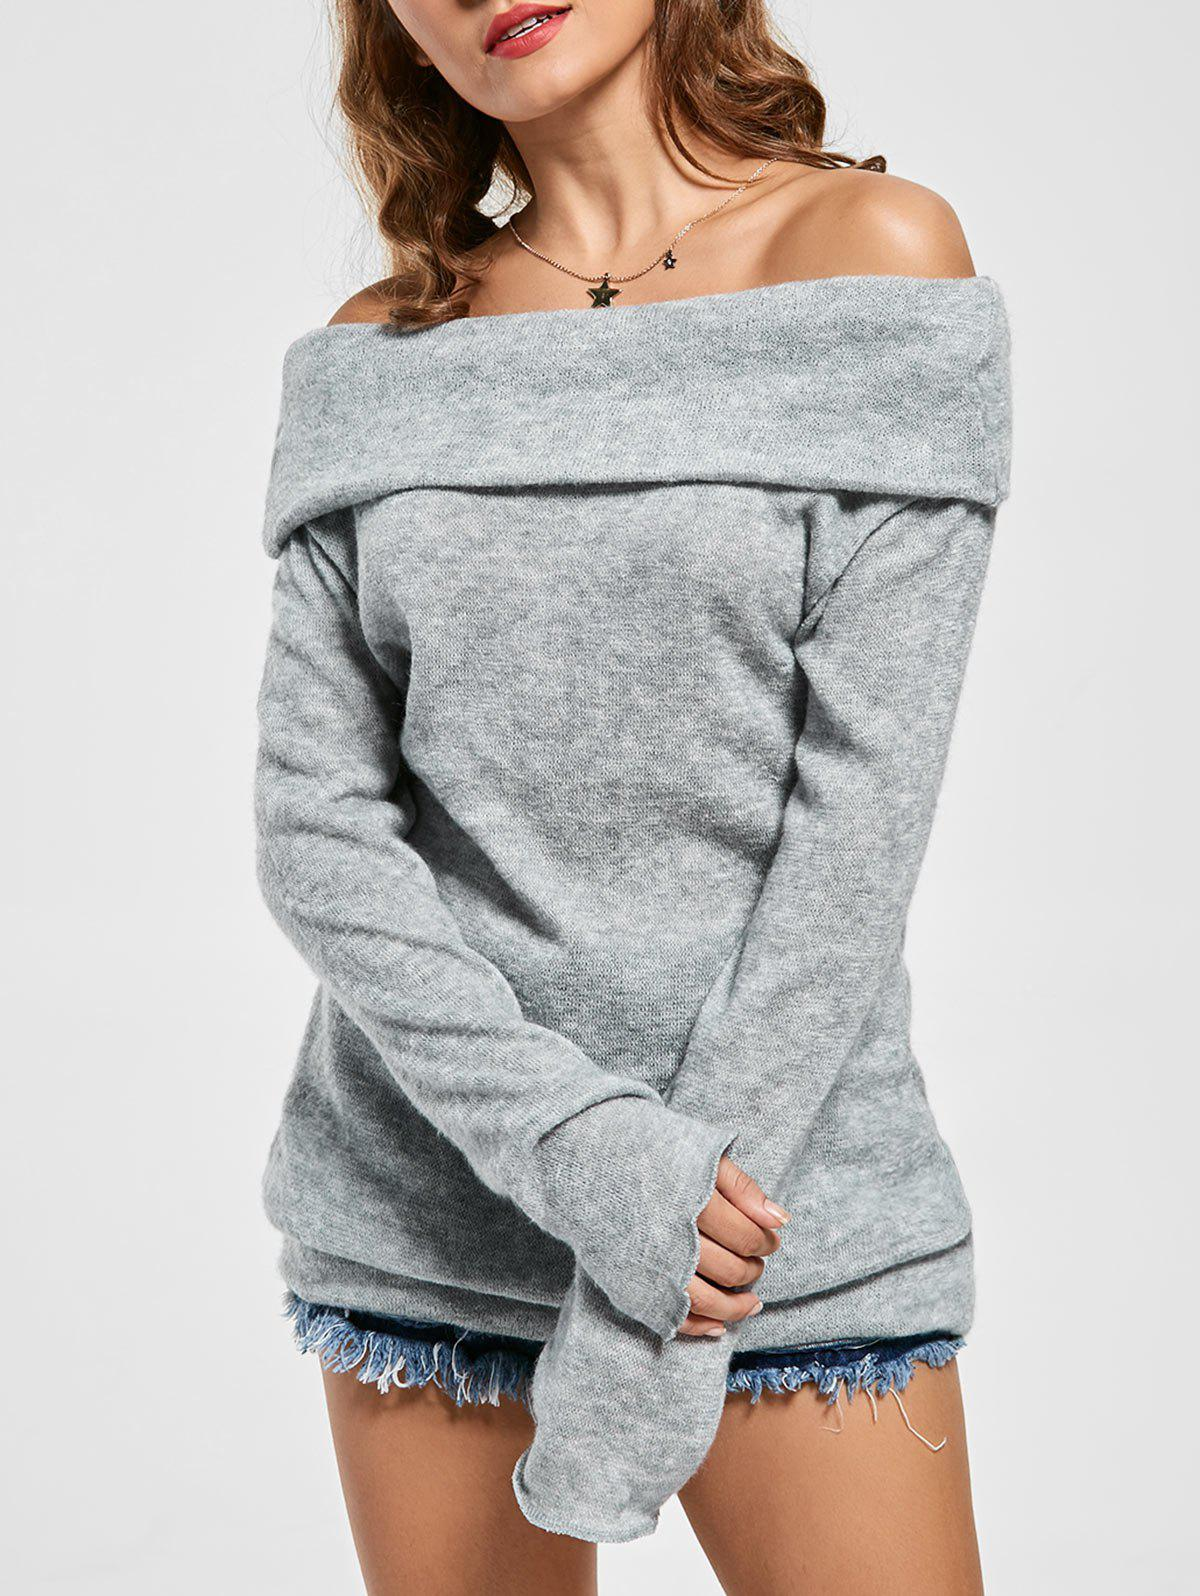 Off The Shoulder SweaterWOMEN<br><br>Size: XL; Color: GRAY; Type: Pullovers; Material: Cotton,Polyester; Sleeve Length: Full; Collar: Off The Shoulder; Style: Casual; Pattern Type: Solid; Season: Fall; Elasticity: Elastic; Weight: 0.3100kg; Package Contents: 1 x Sweater;